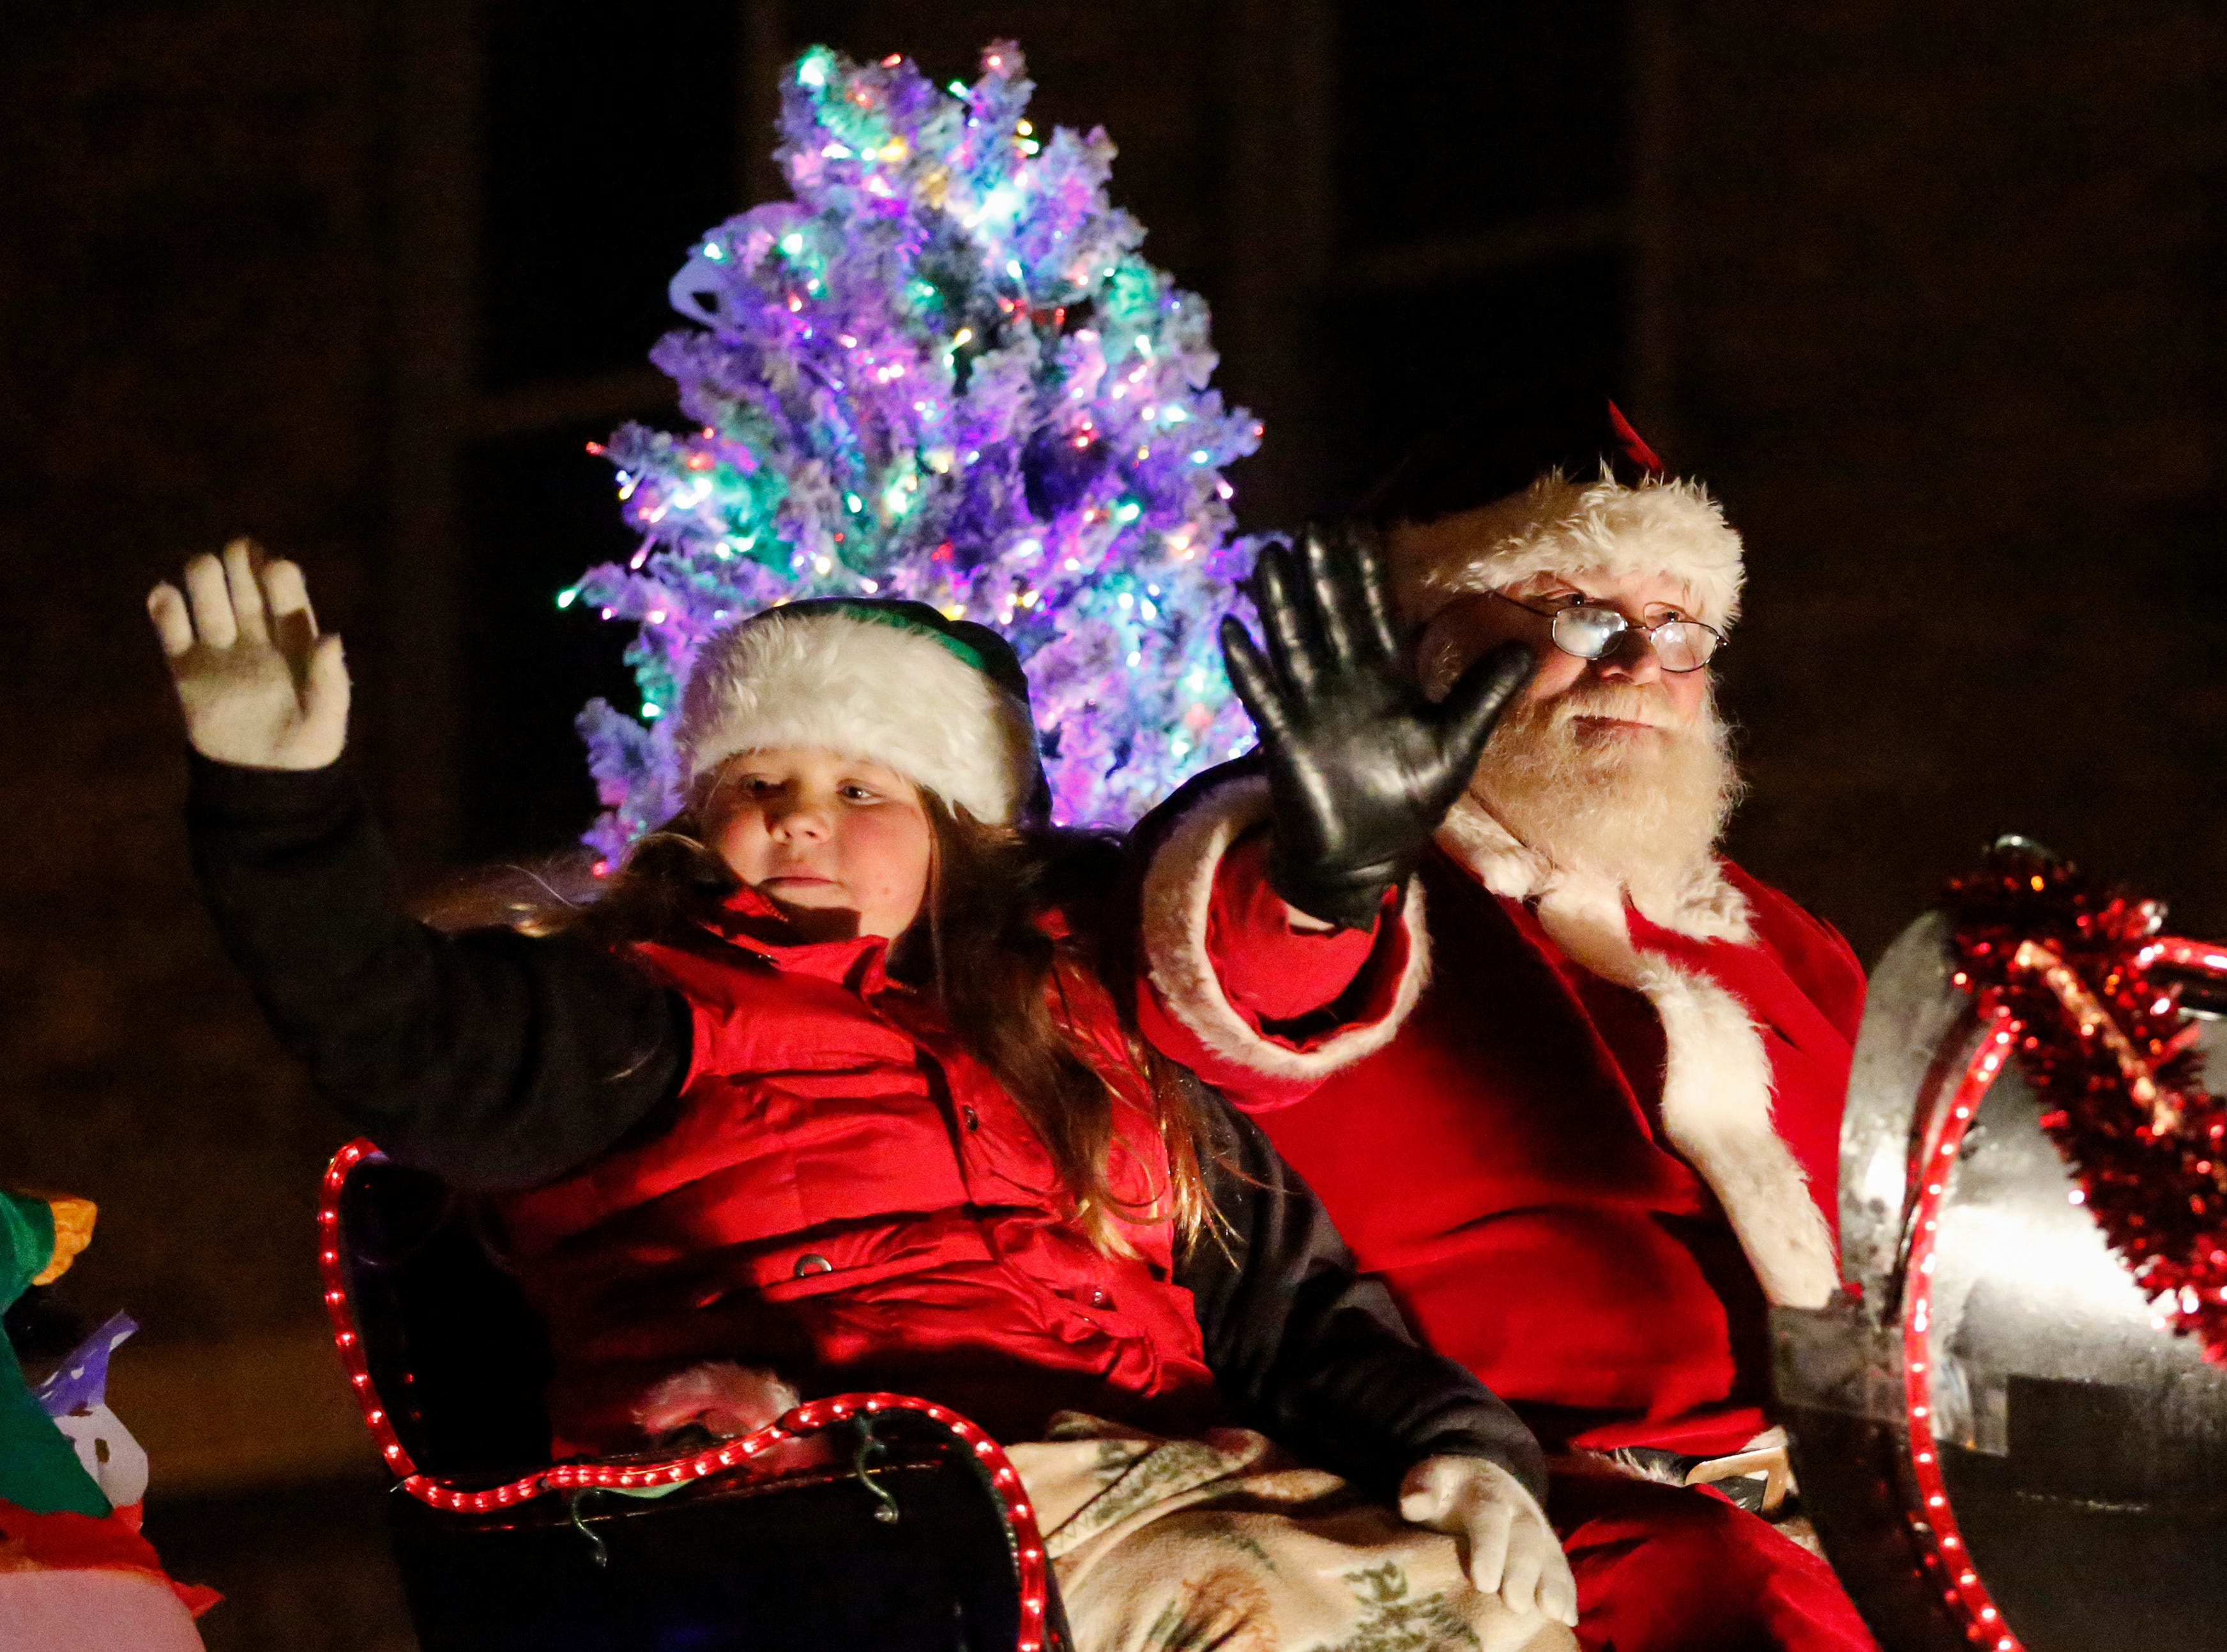 """Santa and one of his little helpers waive to the crowd during the 30th Annual Lakeshore Holiday Parade Wednesday, November 21, 2018, in Manitowoc, Wis. This year's theme was """"Christmas Through the Decades."""" Joshua Clark/USA TODAY NETWORK-Wisconsin"""